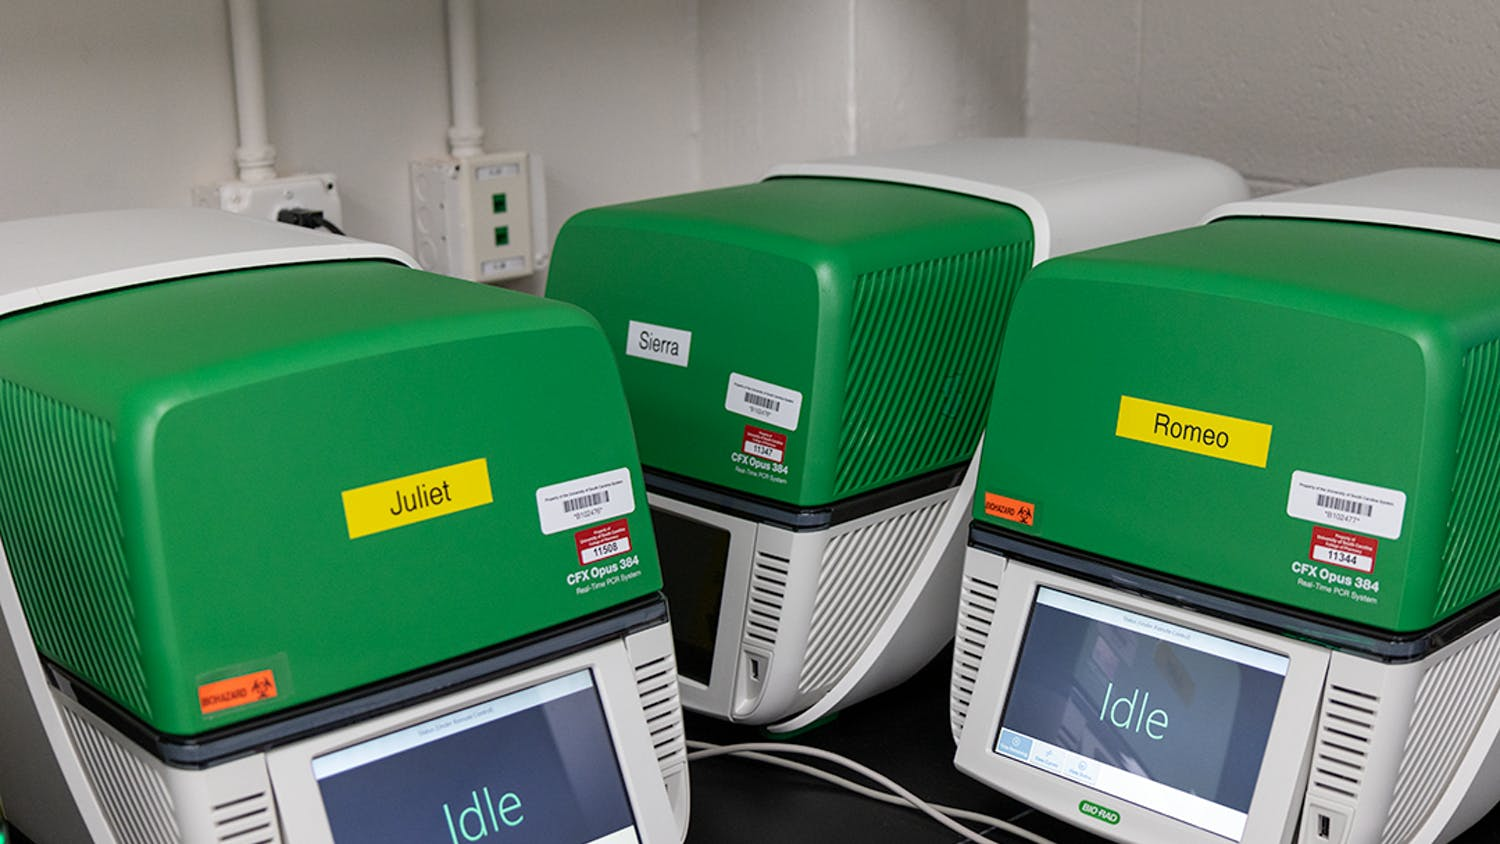 Romeo and Juliet, identification names given to two Bio-Rad CFX Opus 384 PCR detection systems, stand idle waiting for a tray of samples. When in use, these units scan a tray of samples for one hour and 30 minutes before being validated and then uploaded.